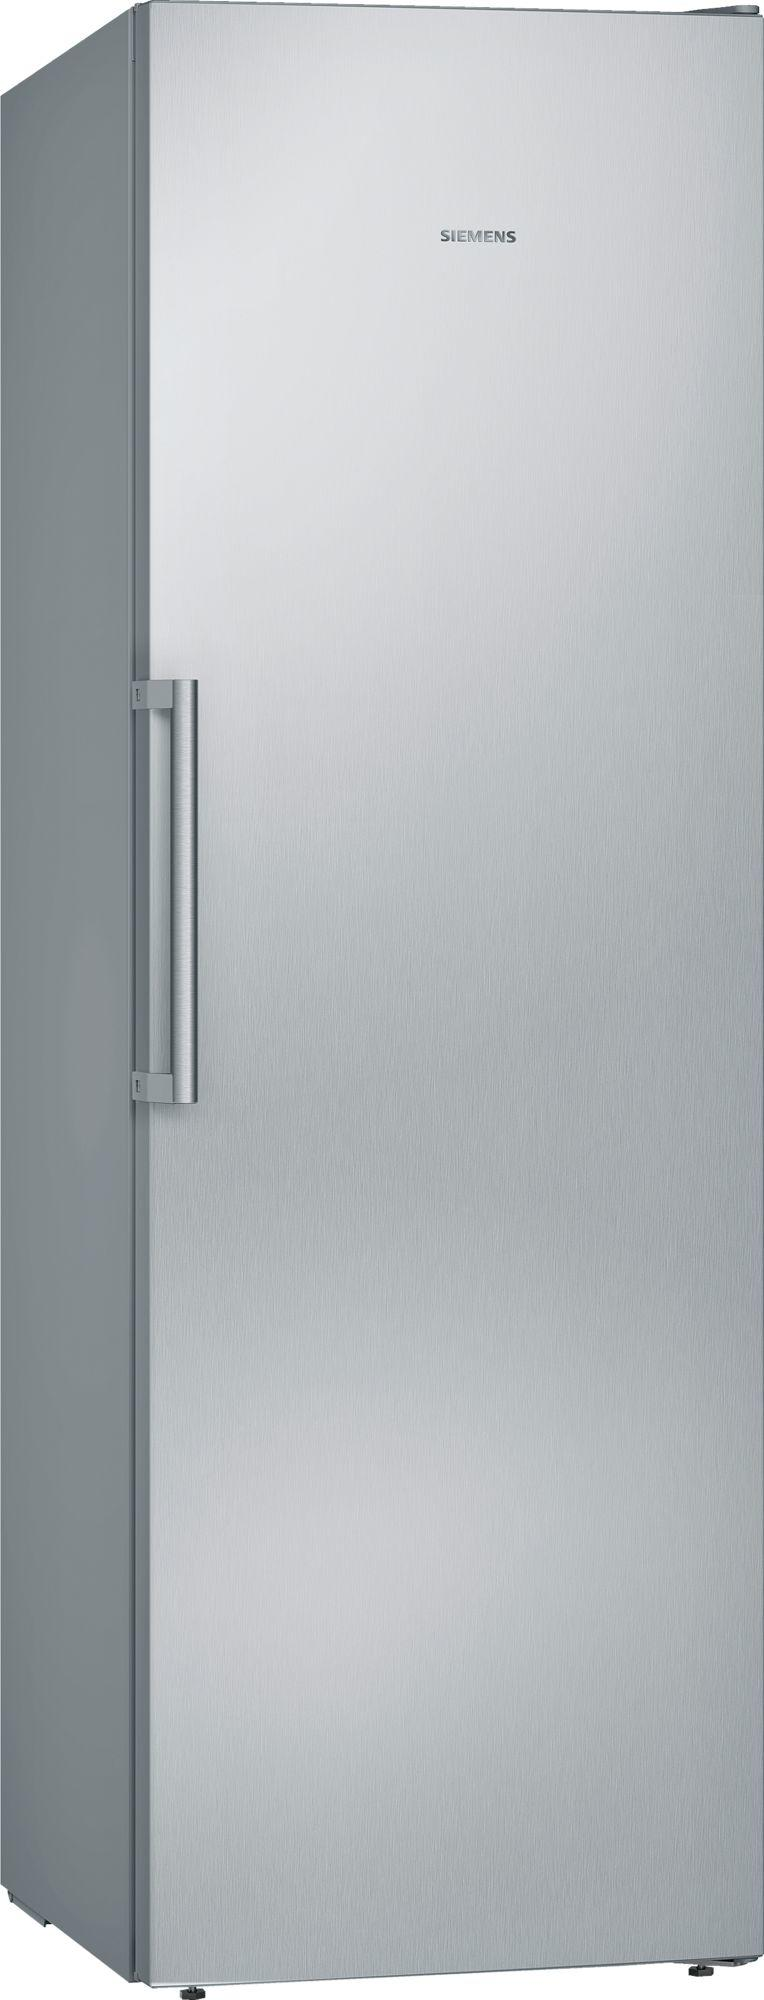 Image of iQ300 GS36NVIFV 242 Litre 60cm A++ Single Door Freezer | Silver Inox